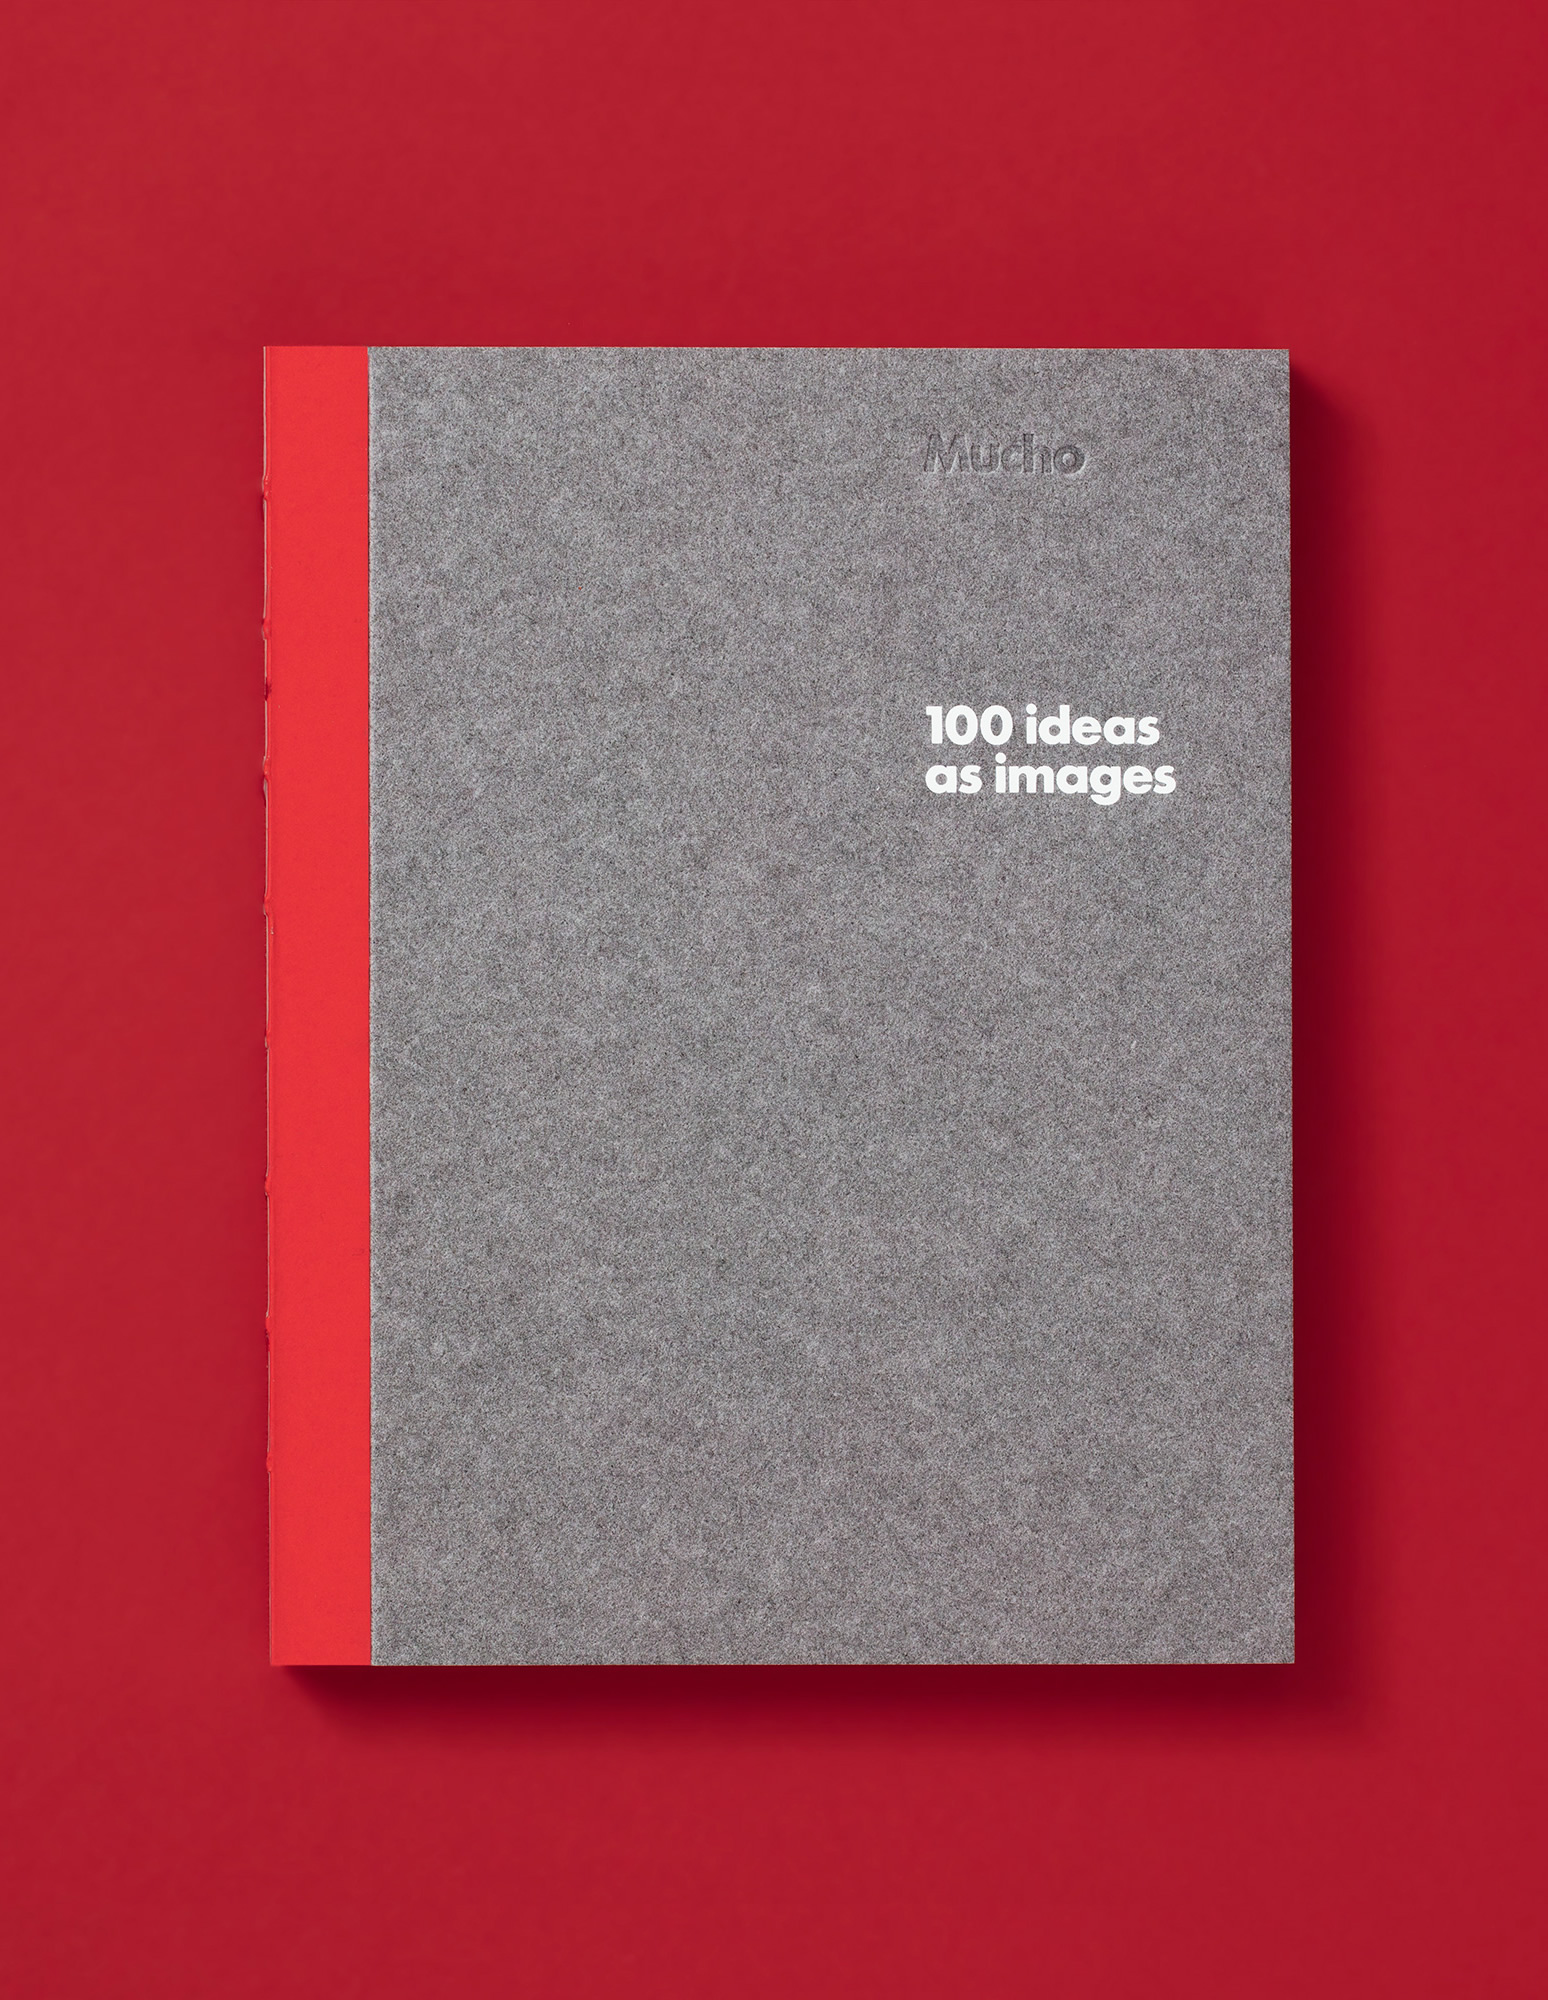 100 ideas as images